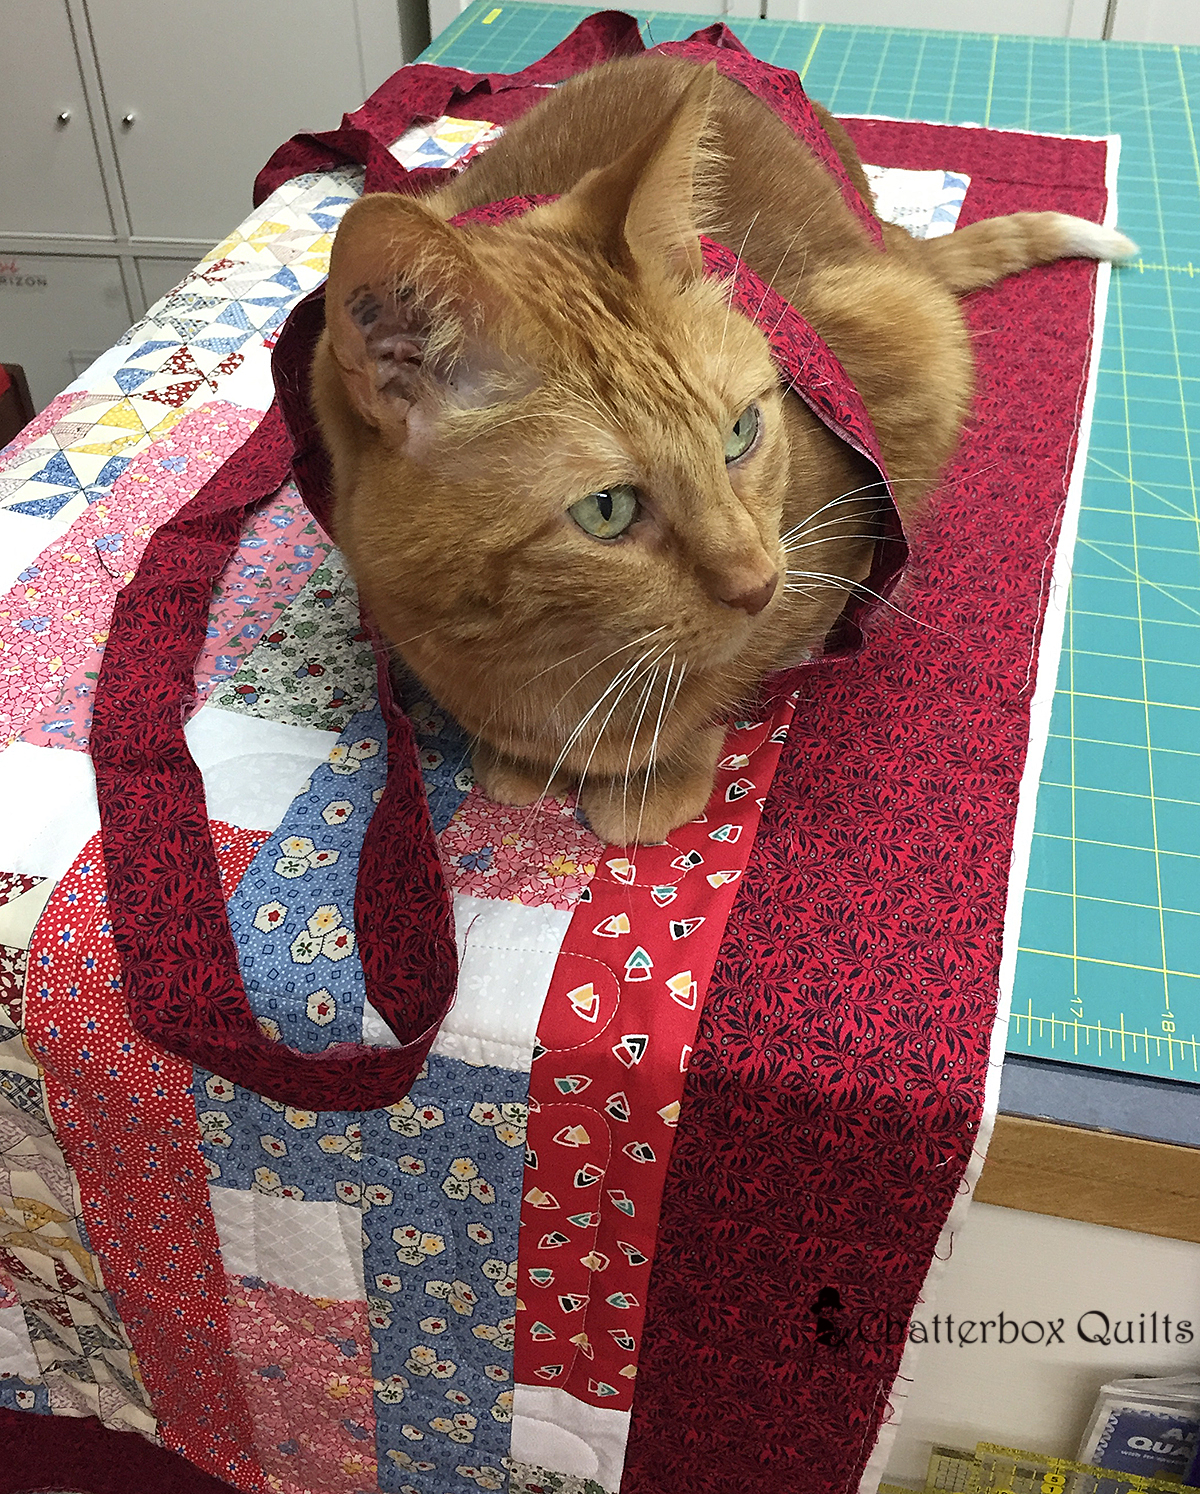 Charlie all ready to start stitching that binding onto the quilt